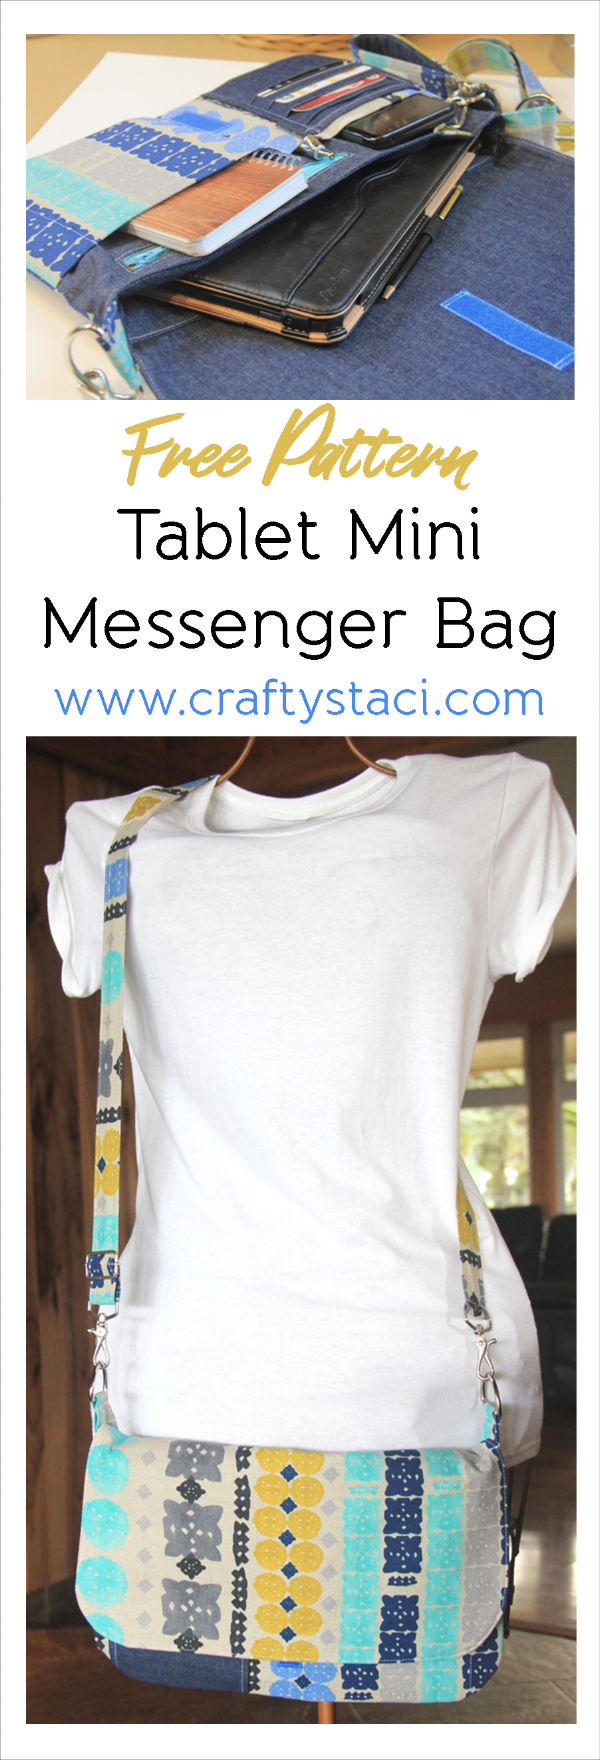 Tablet Mini Messenger Bag with Adjustable Strap - Free Pattern from craftystaci.com #freesewingpattern #bagsewingpattern